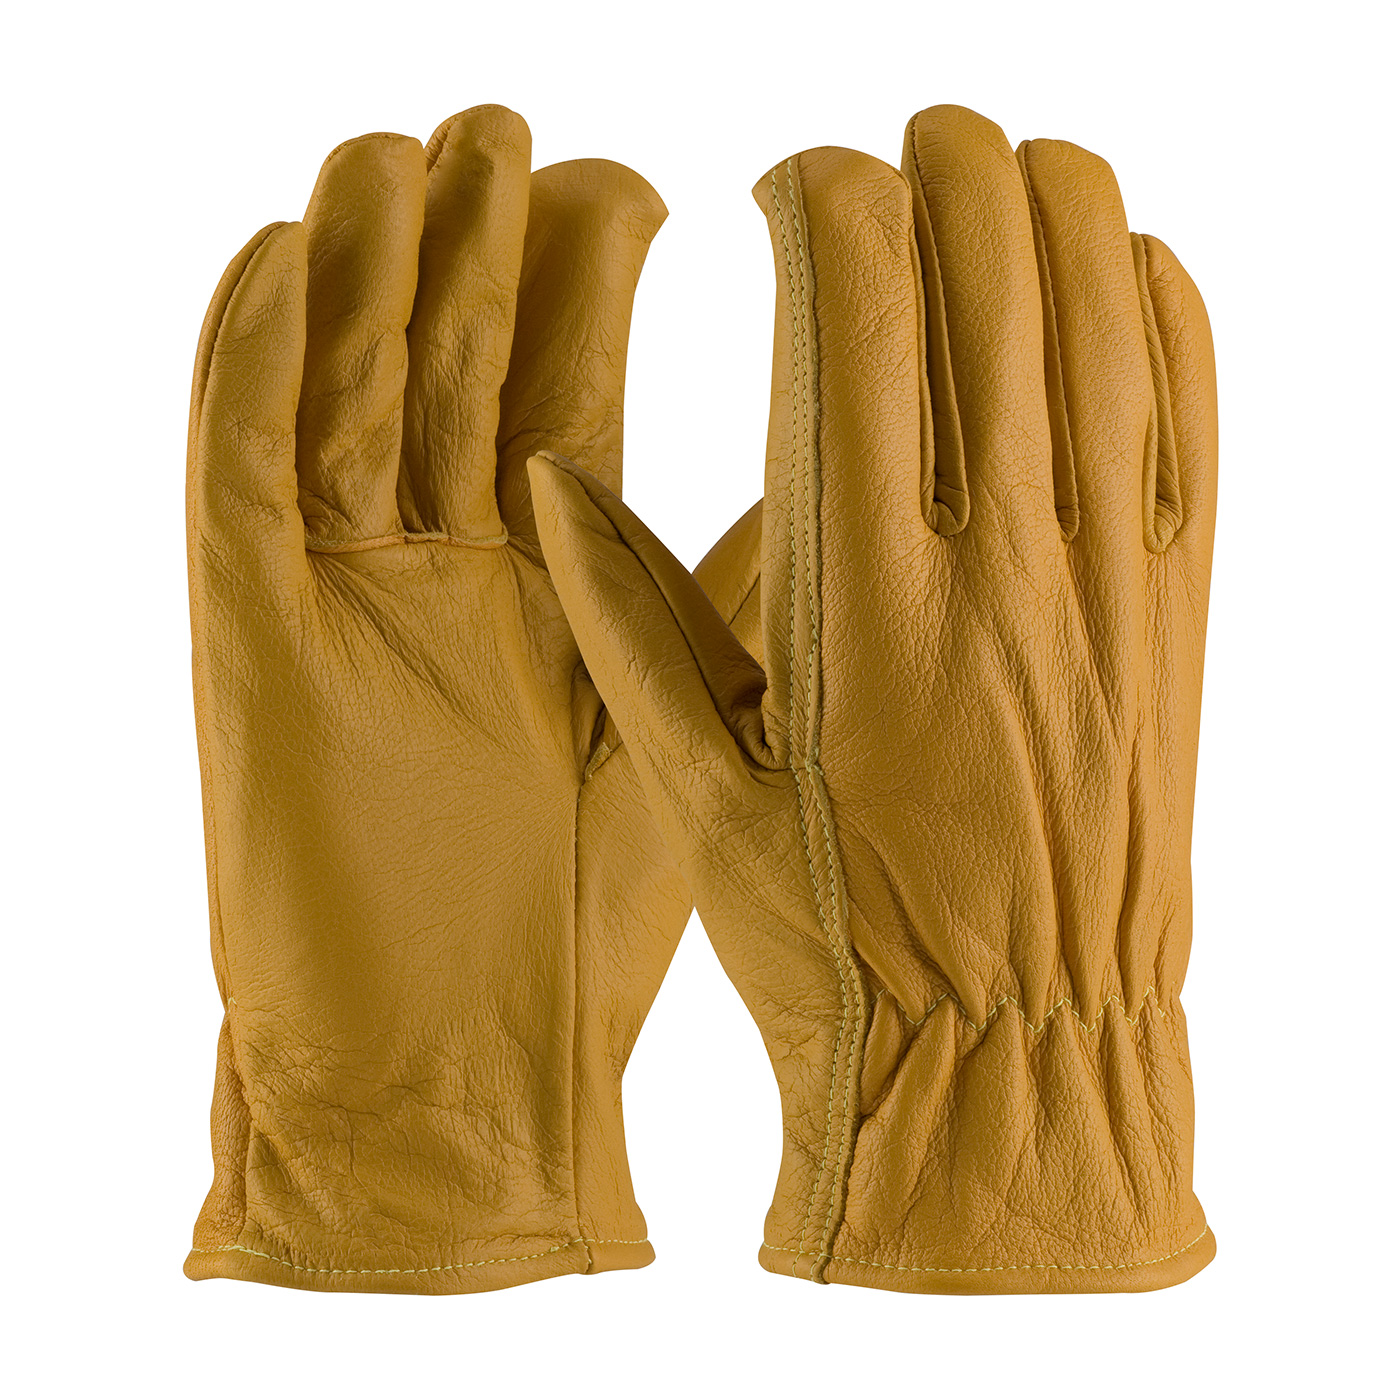 Cut Resistant Gloves Hand Protection Protective